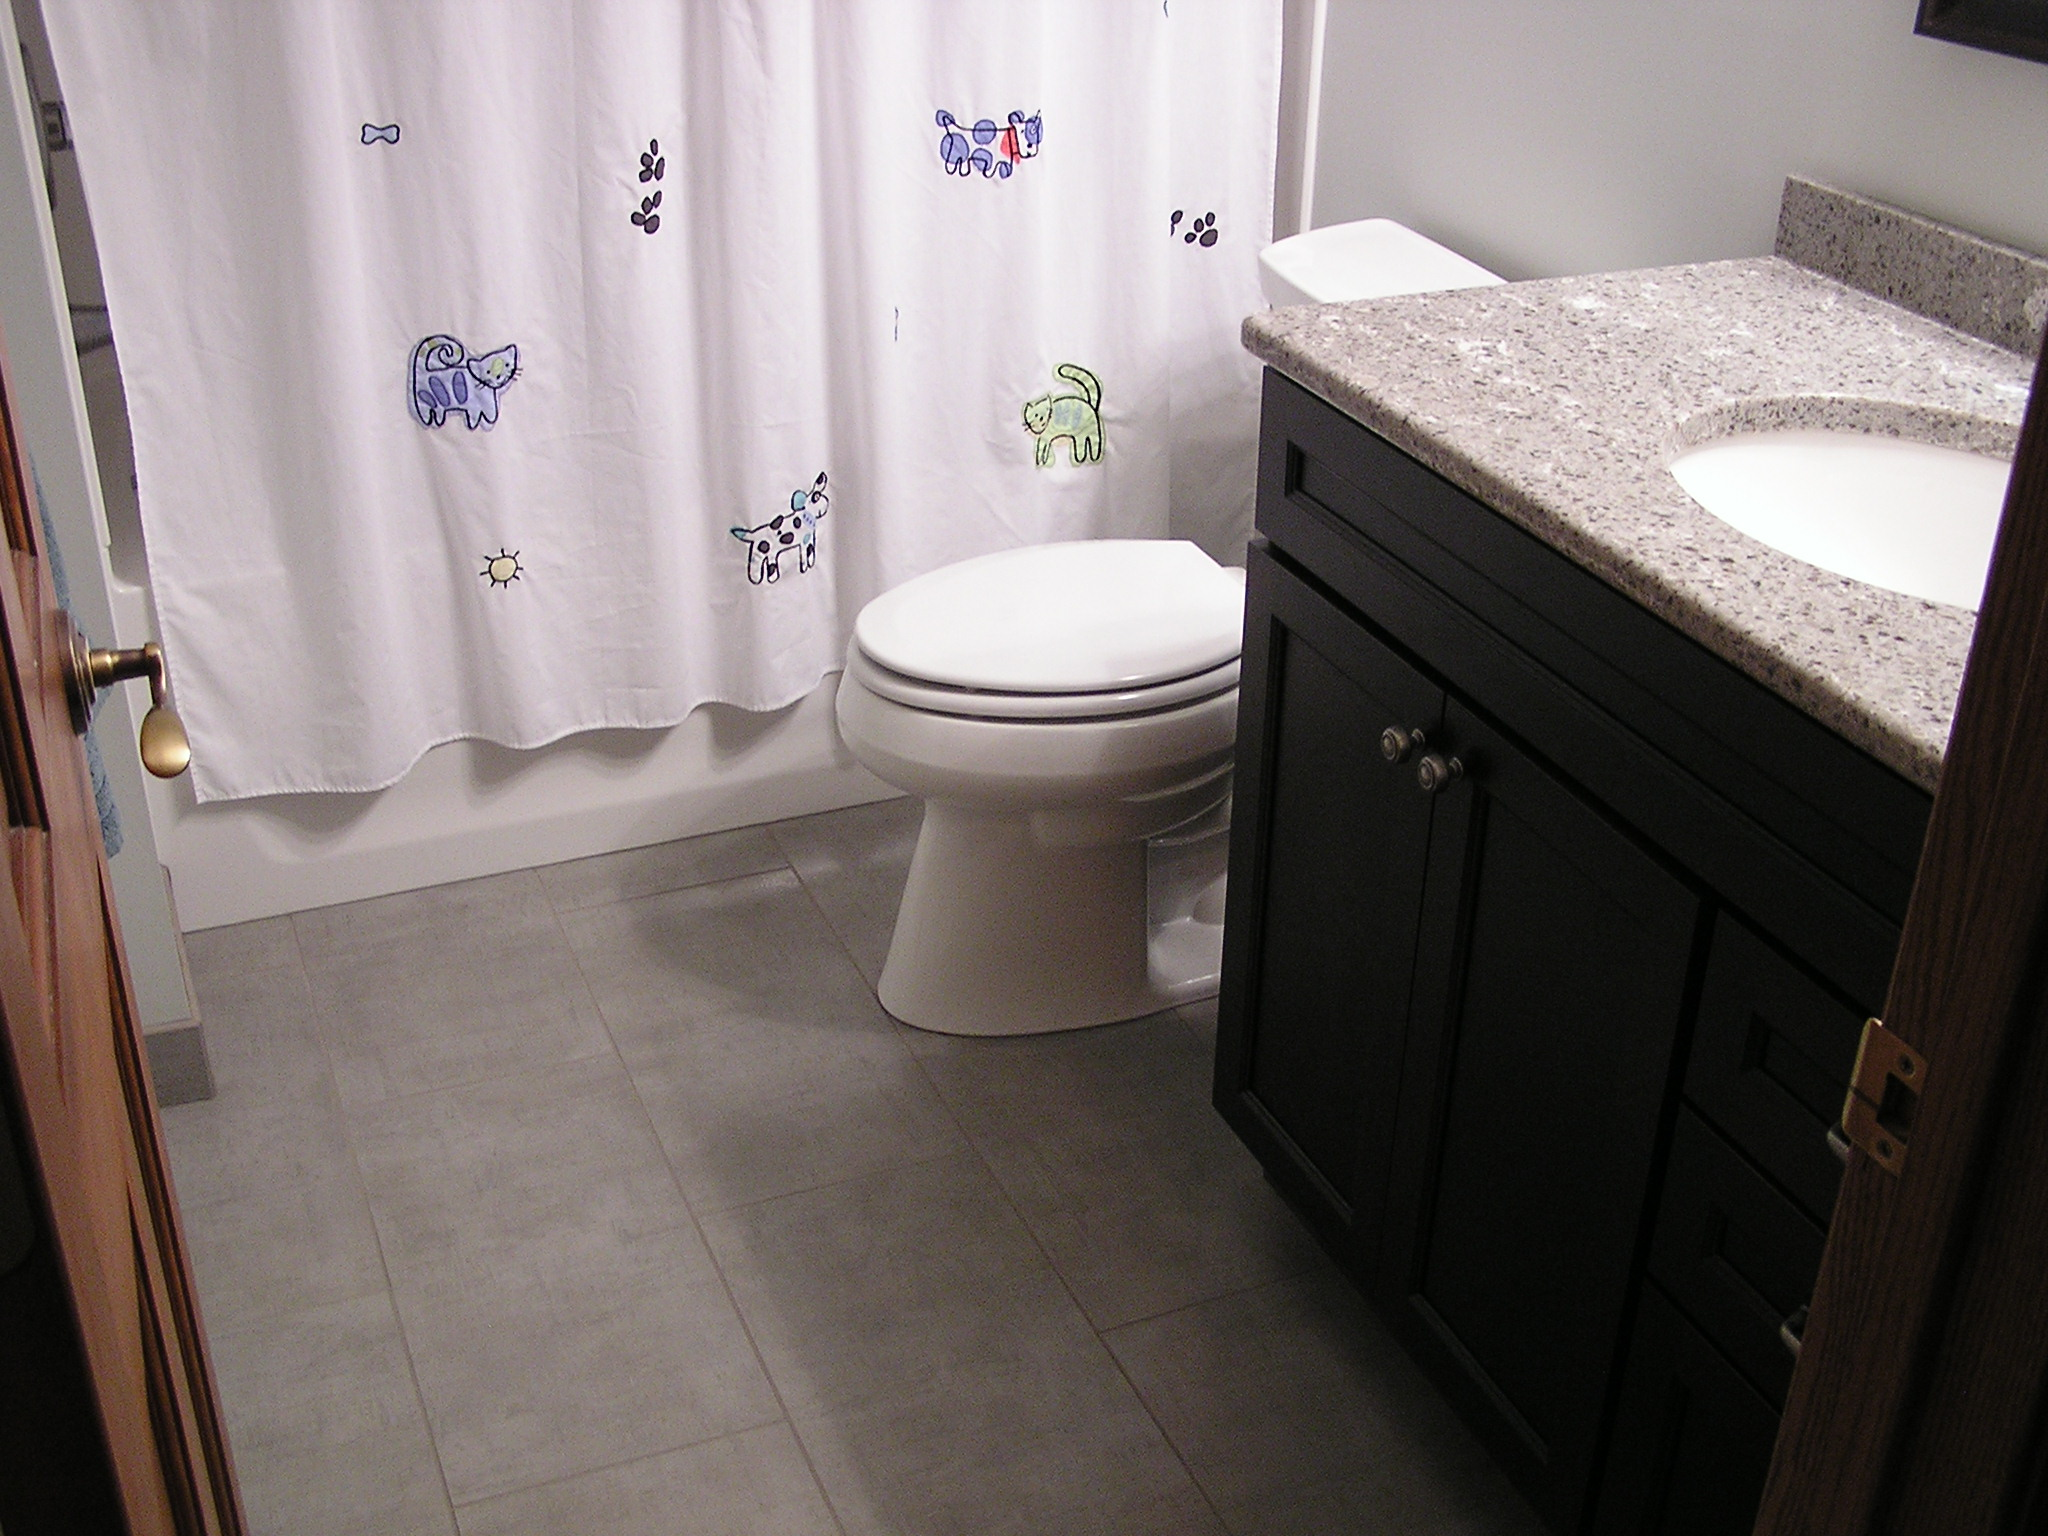 Bathroom Remodeling Mn kids bathroom remodel in mendota heights - allrounder remodeling inc.